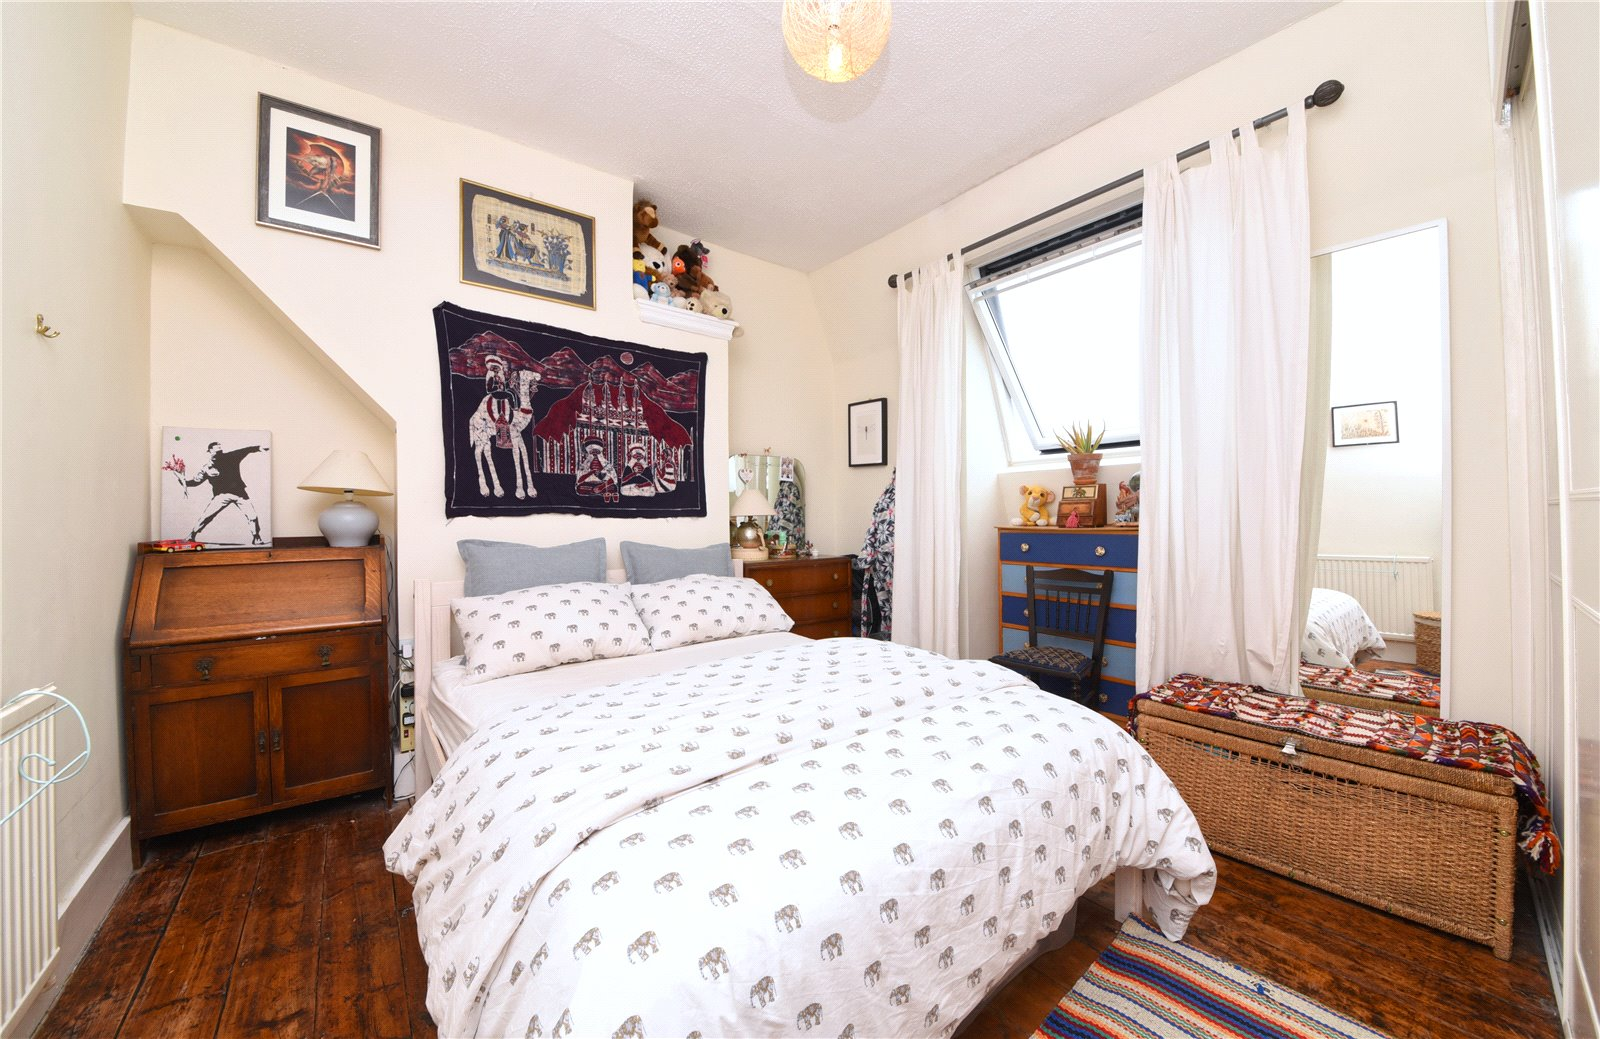 1 bed apartment for sale in New Barnet, EN5 5HW 0